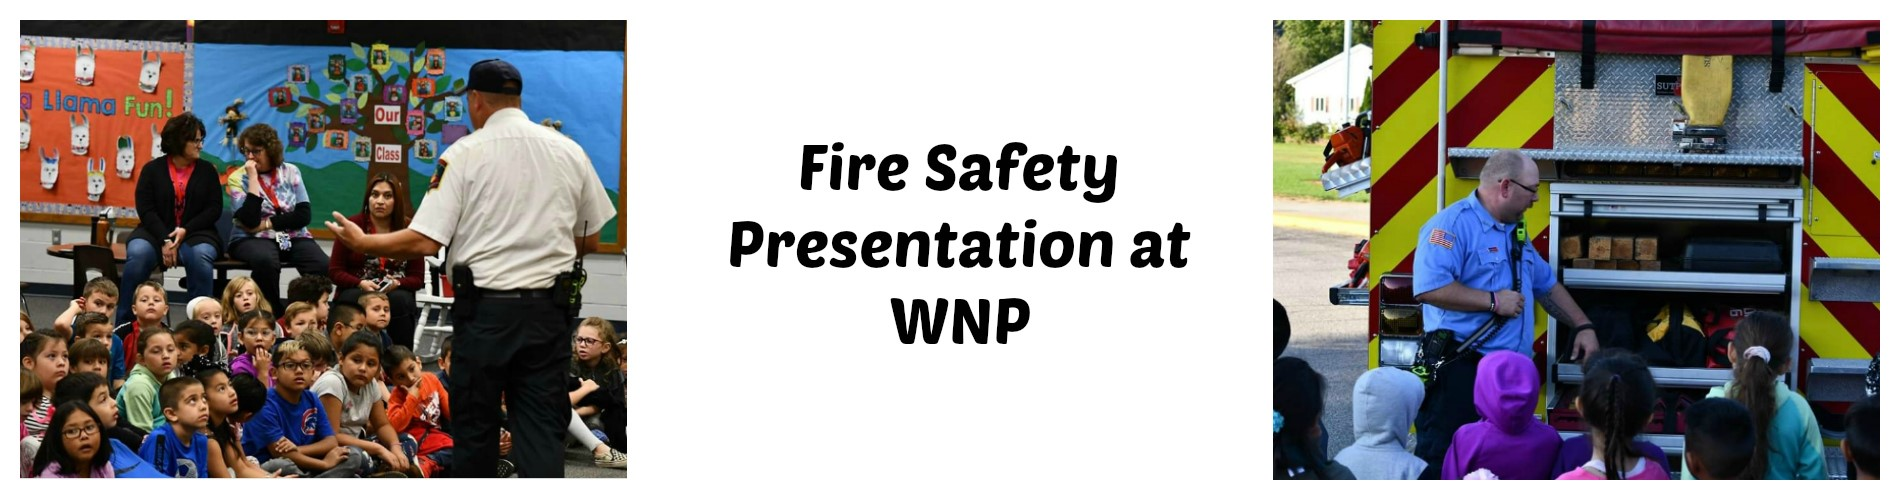 WNP Fire Safety Presentation